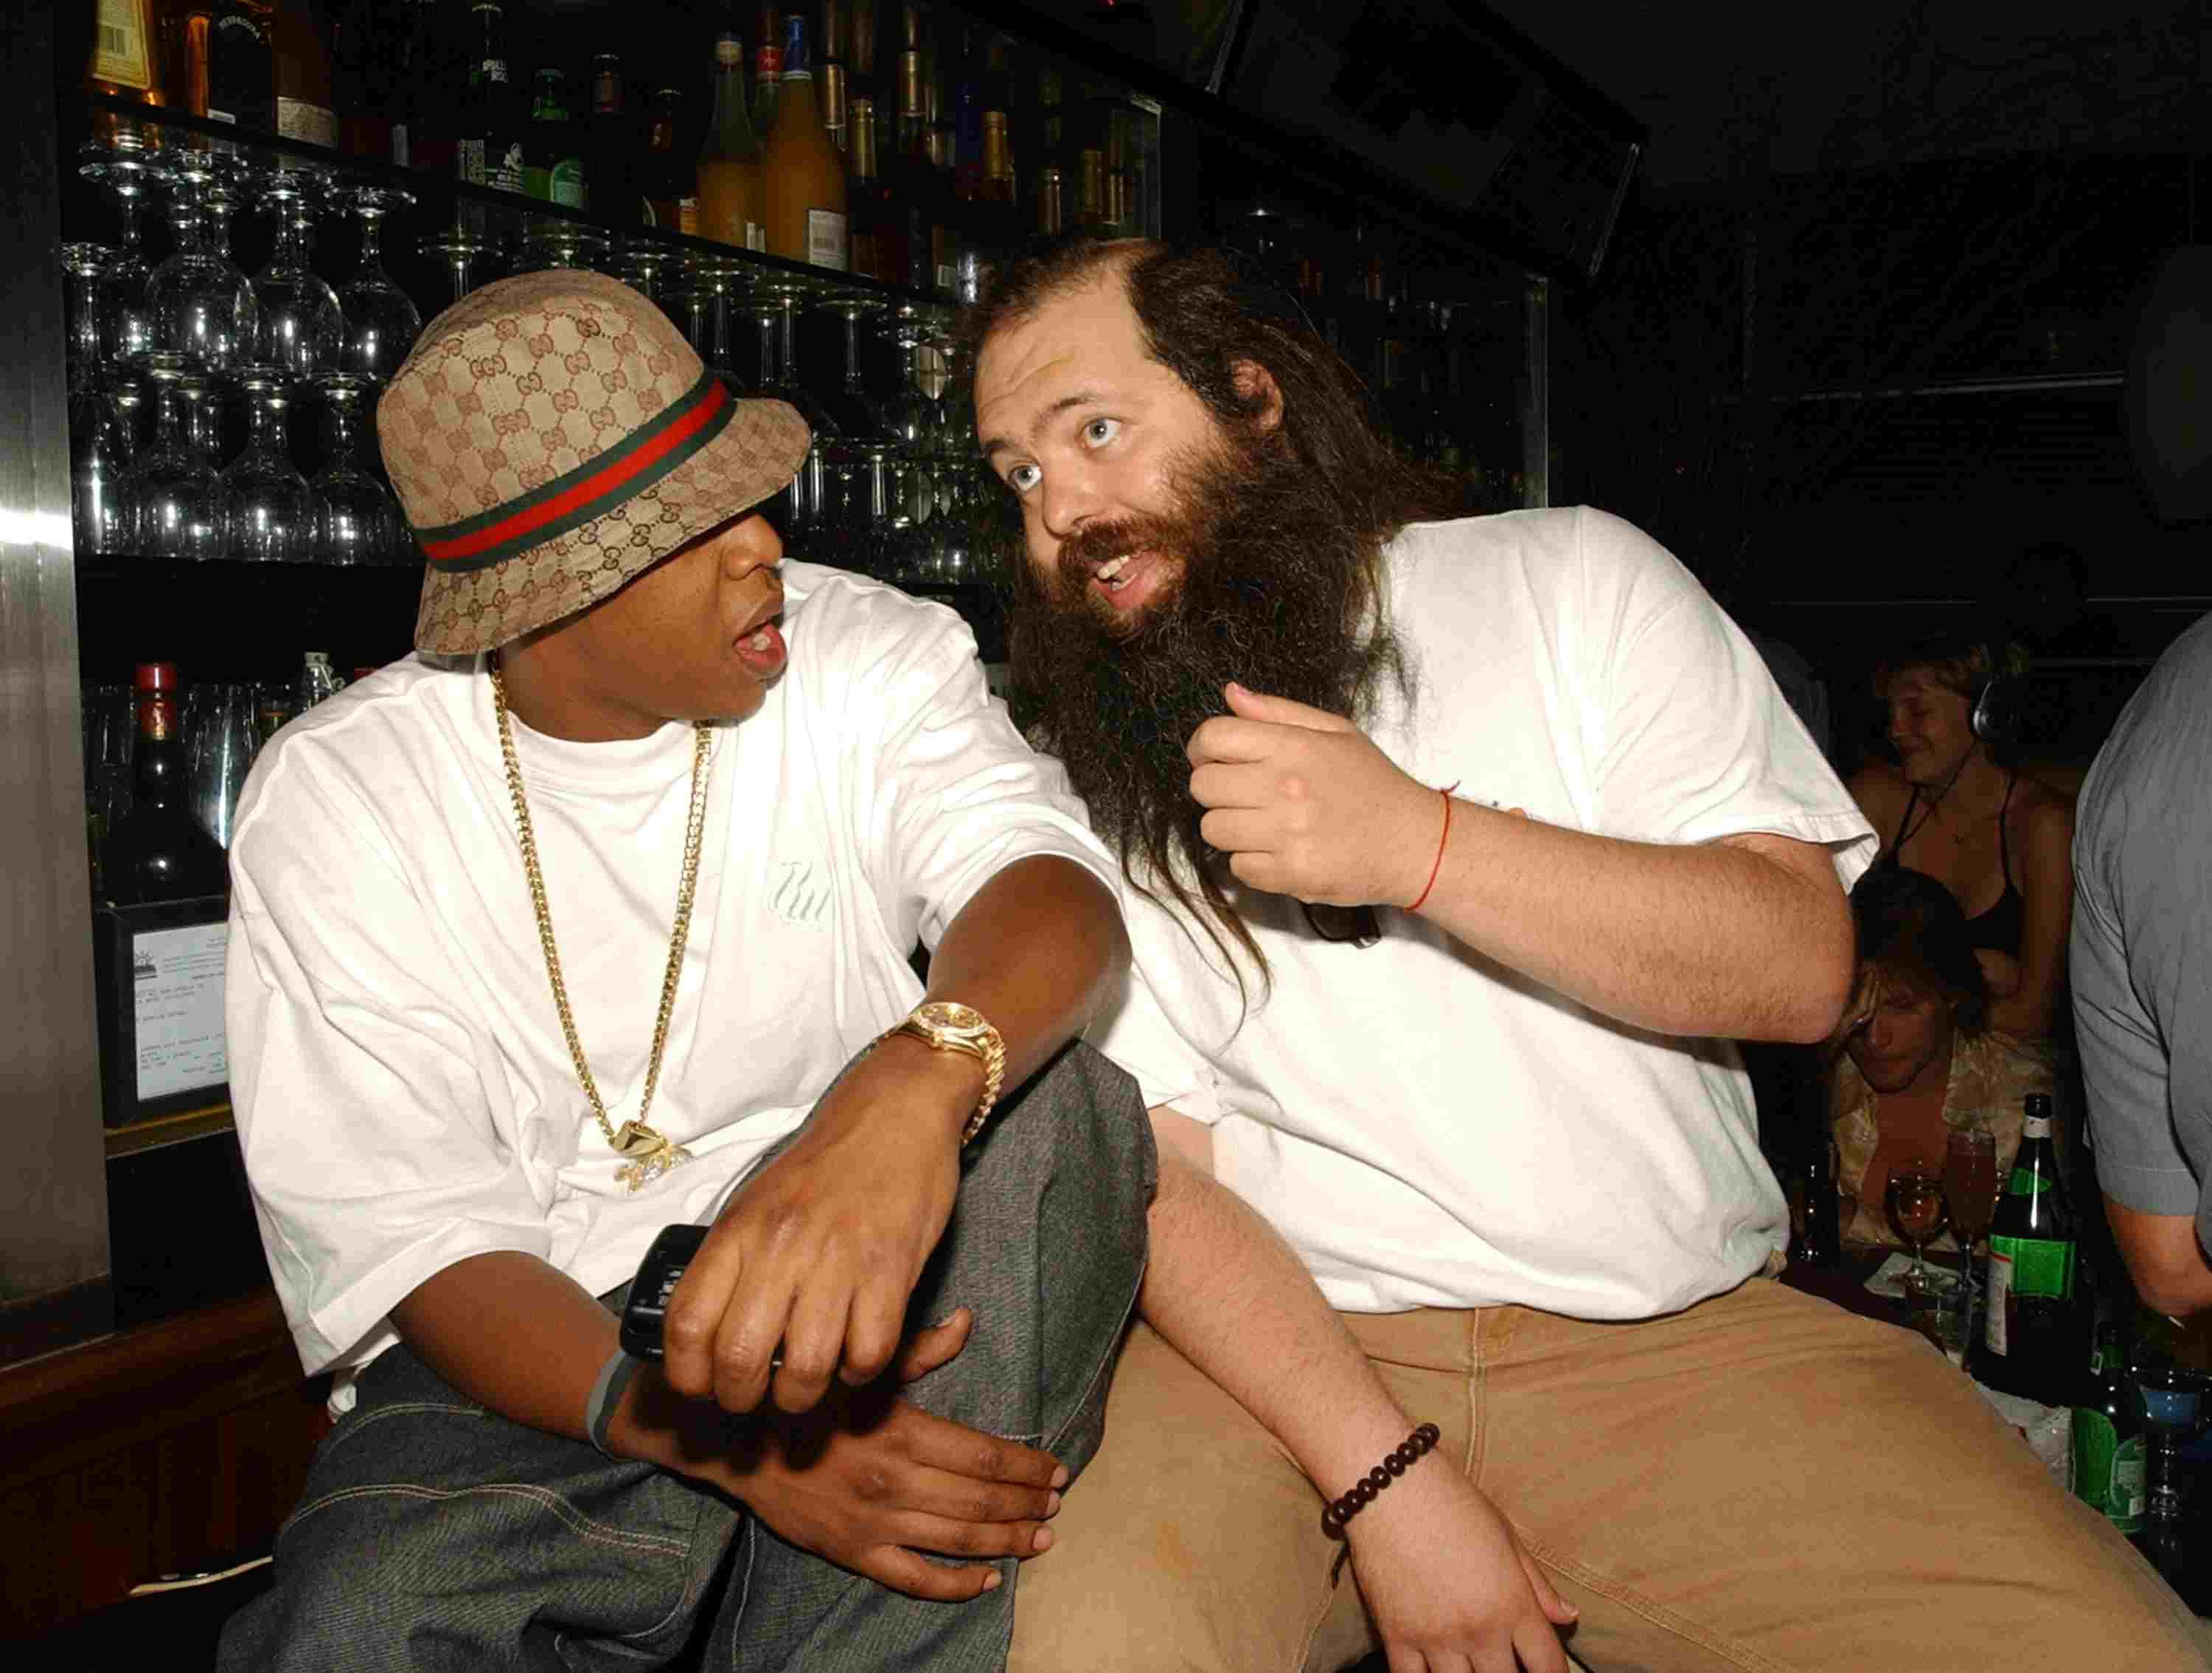 Def Jam Party - Lyor Cohen and Russell Simmons Reunite with Def Jam's Original Co-Founder, Rick Rubin